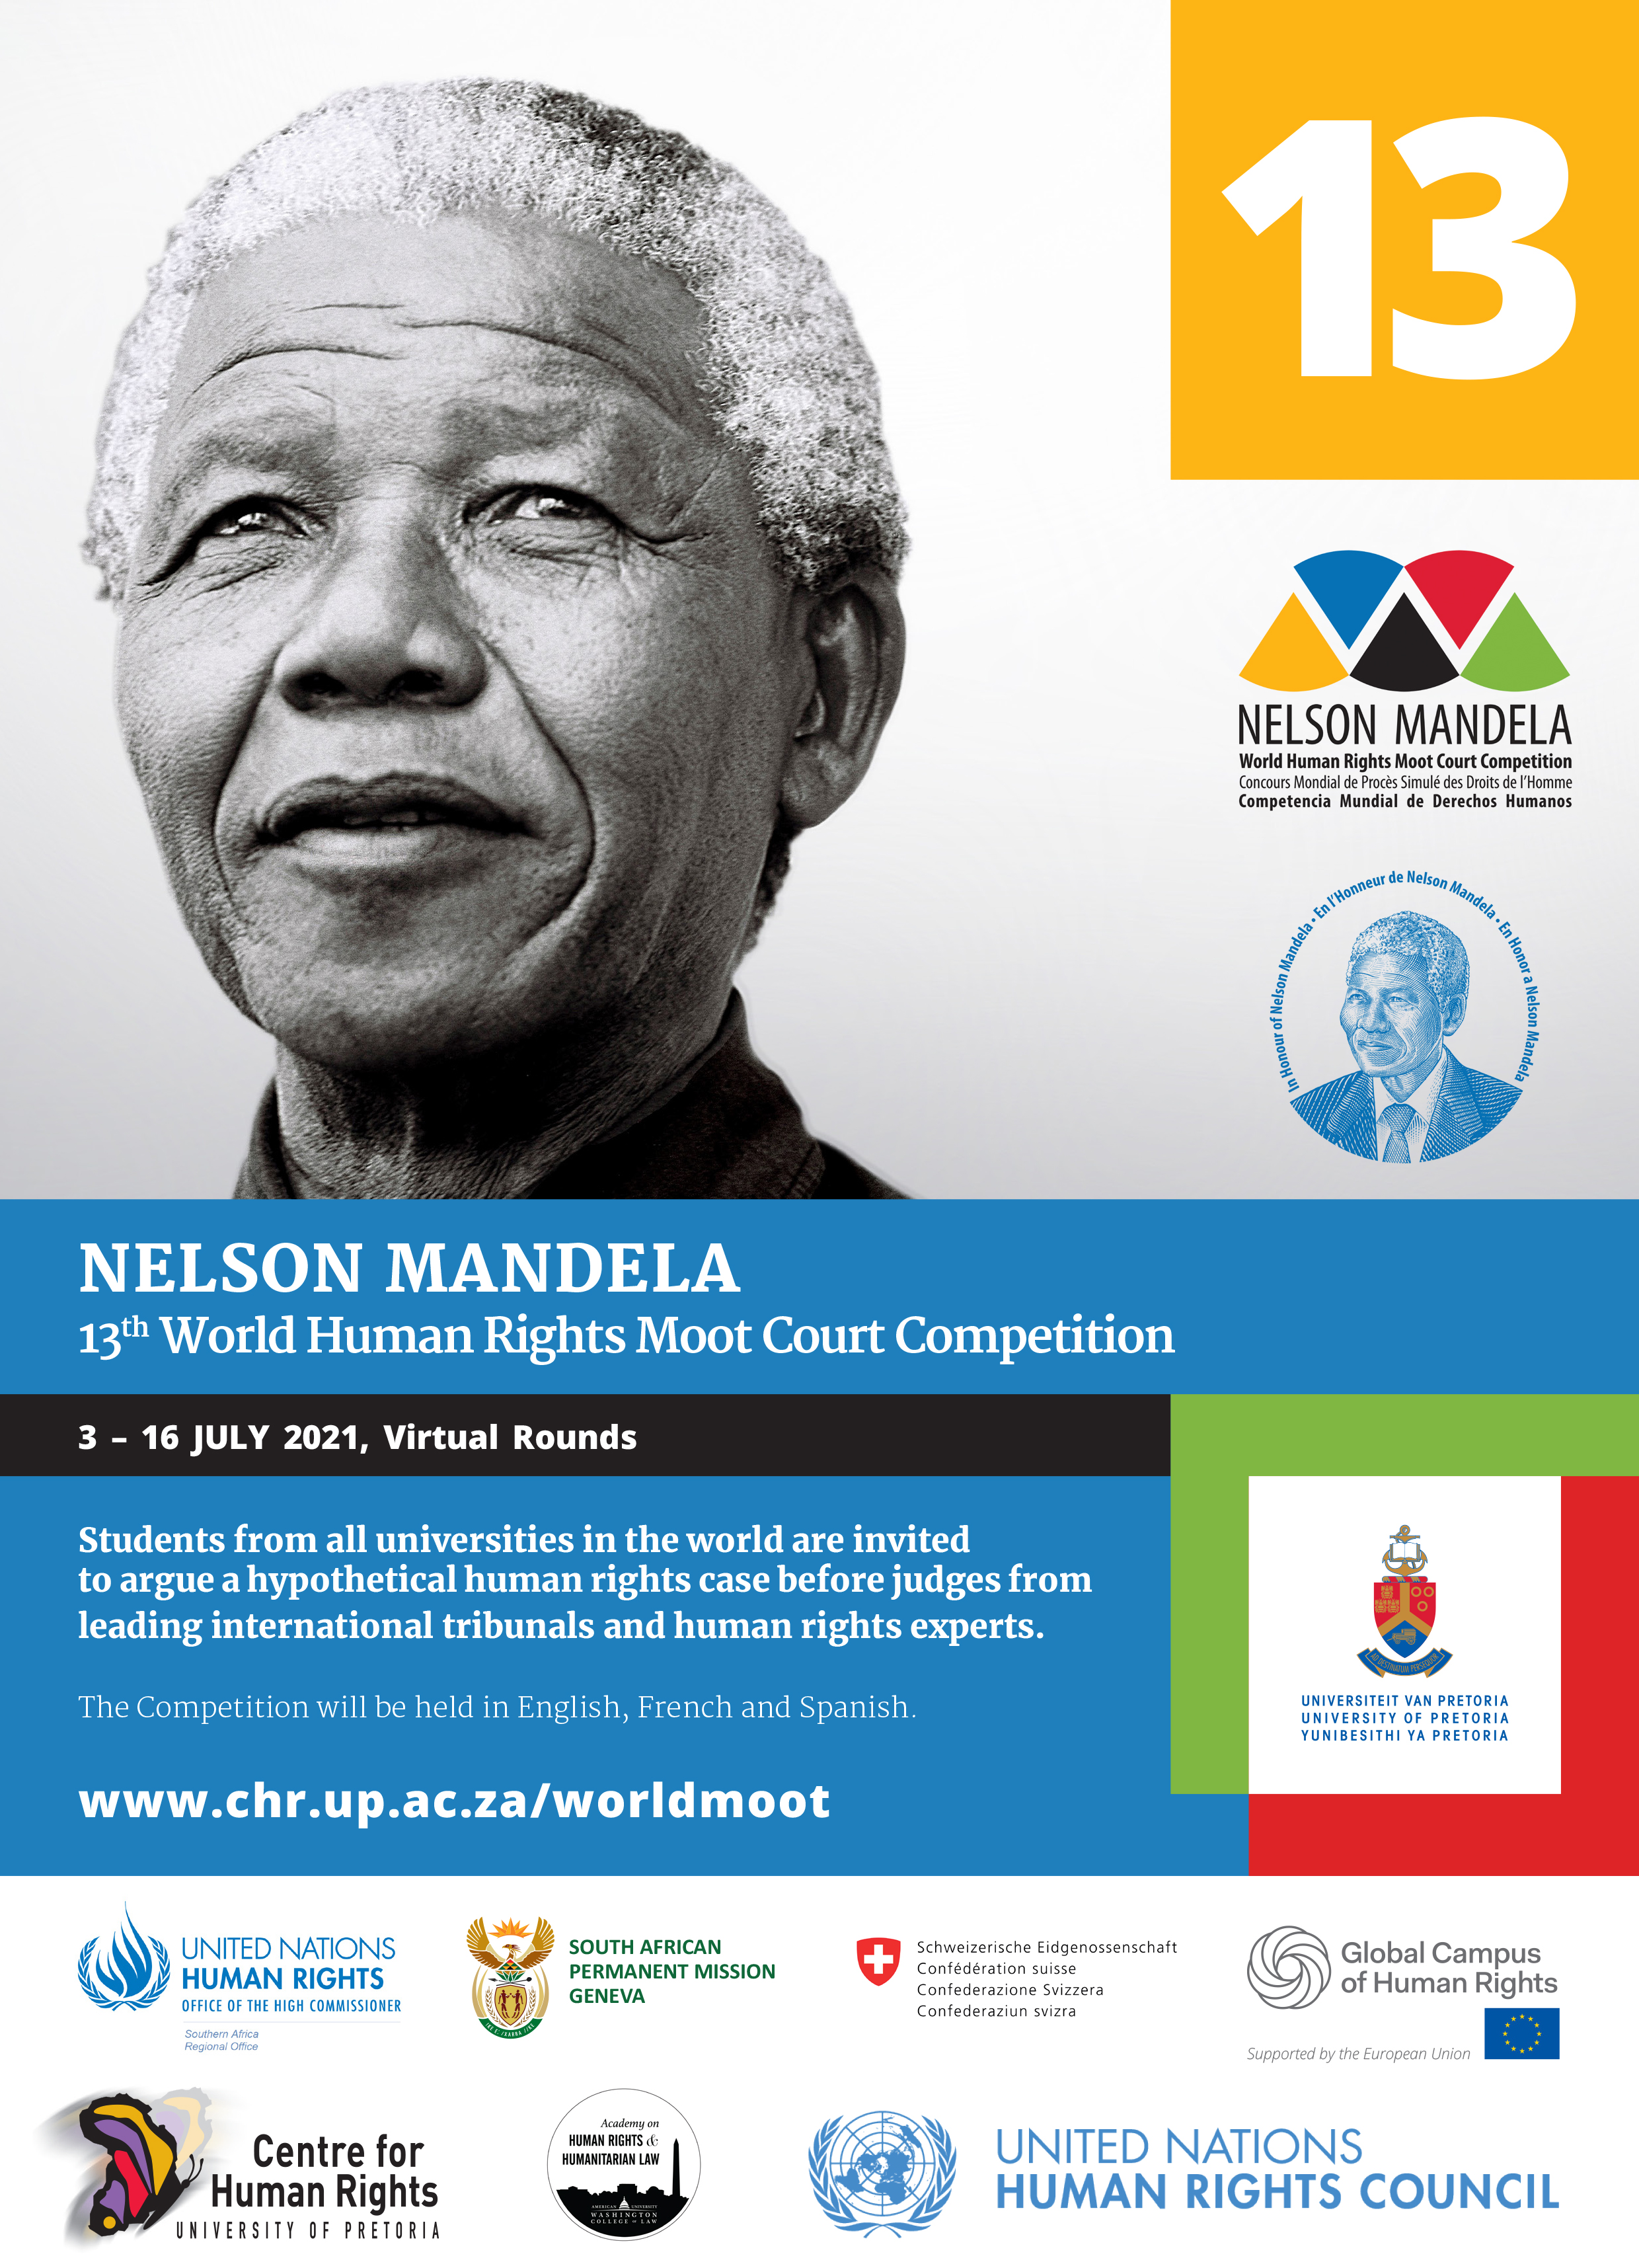 A poster of the Nelson Mandela World Human Rights Moot Court competition.